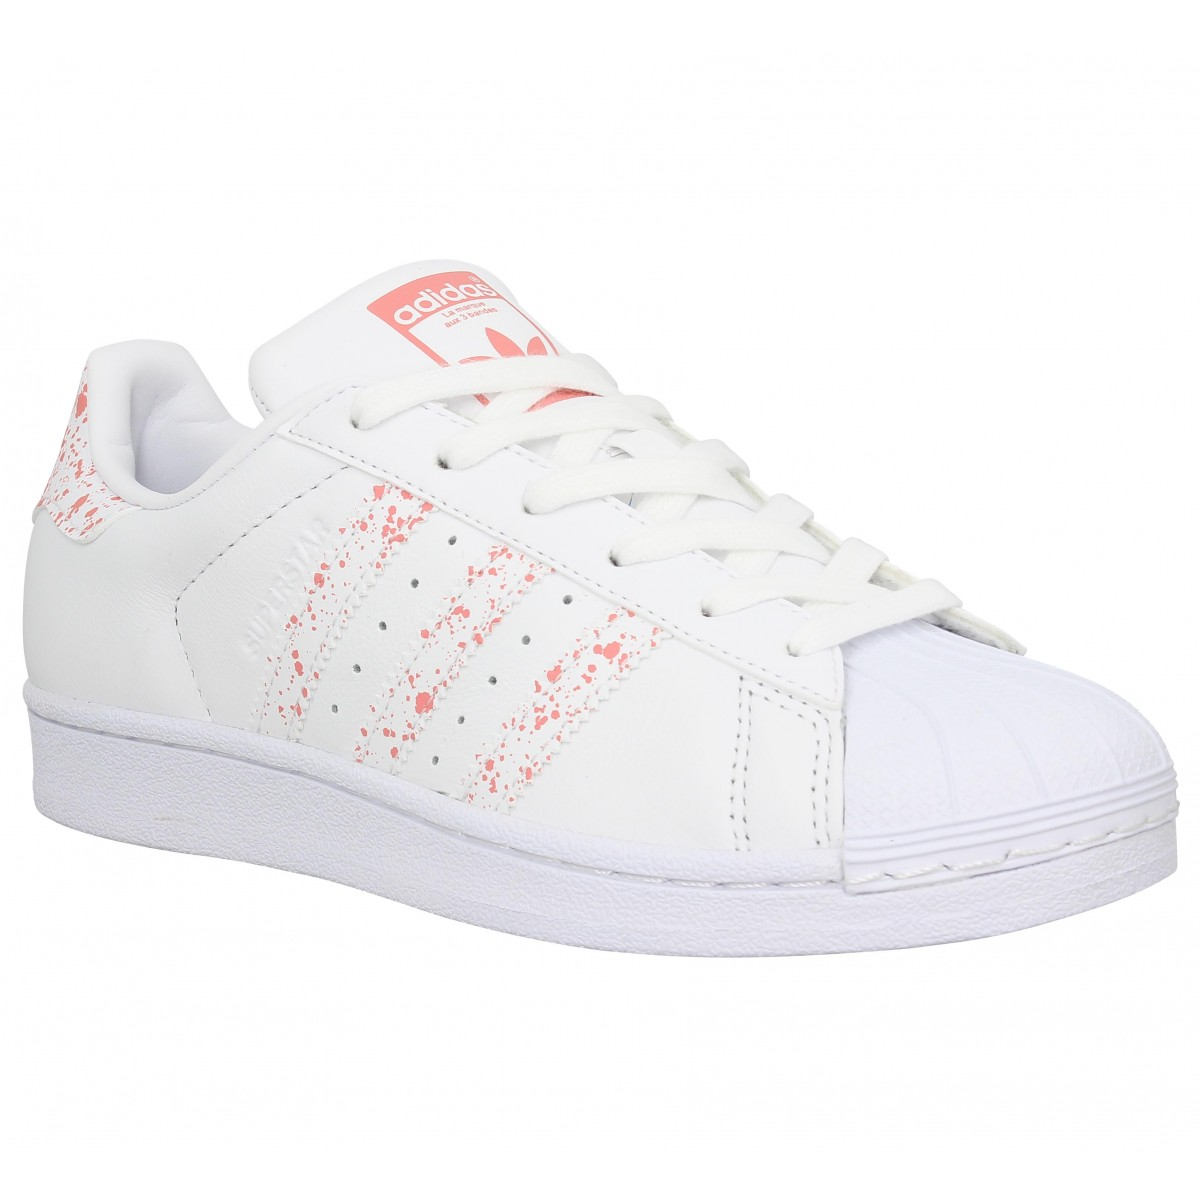 Baskets ADIDAS Superstar cuir Femme Blanc Rose